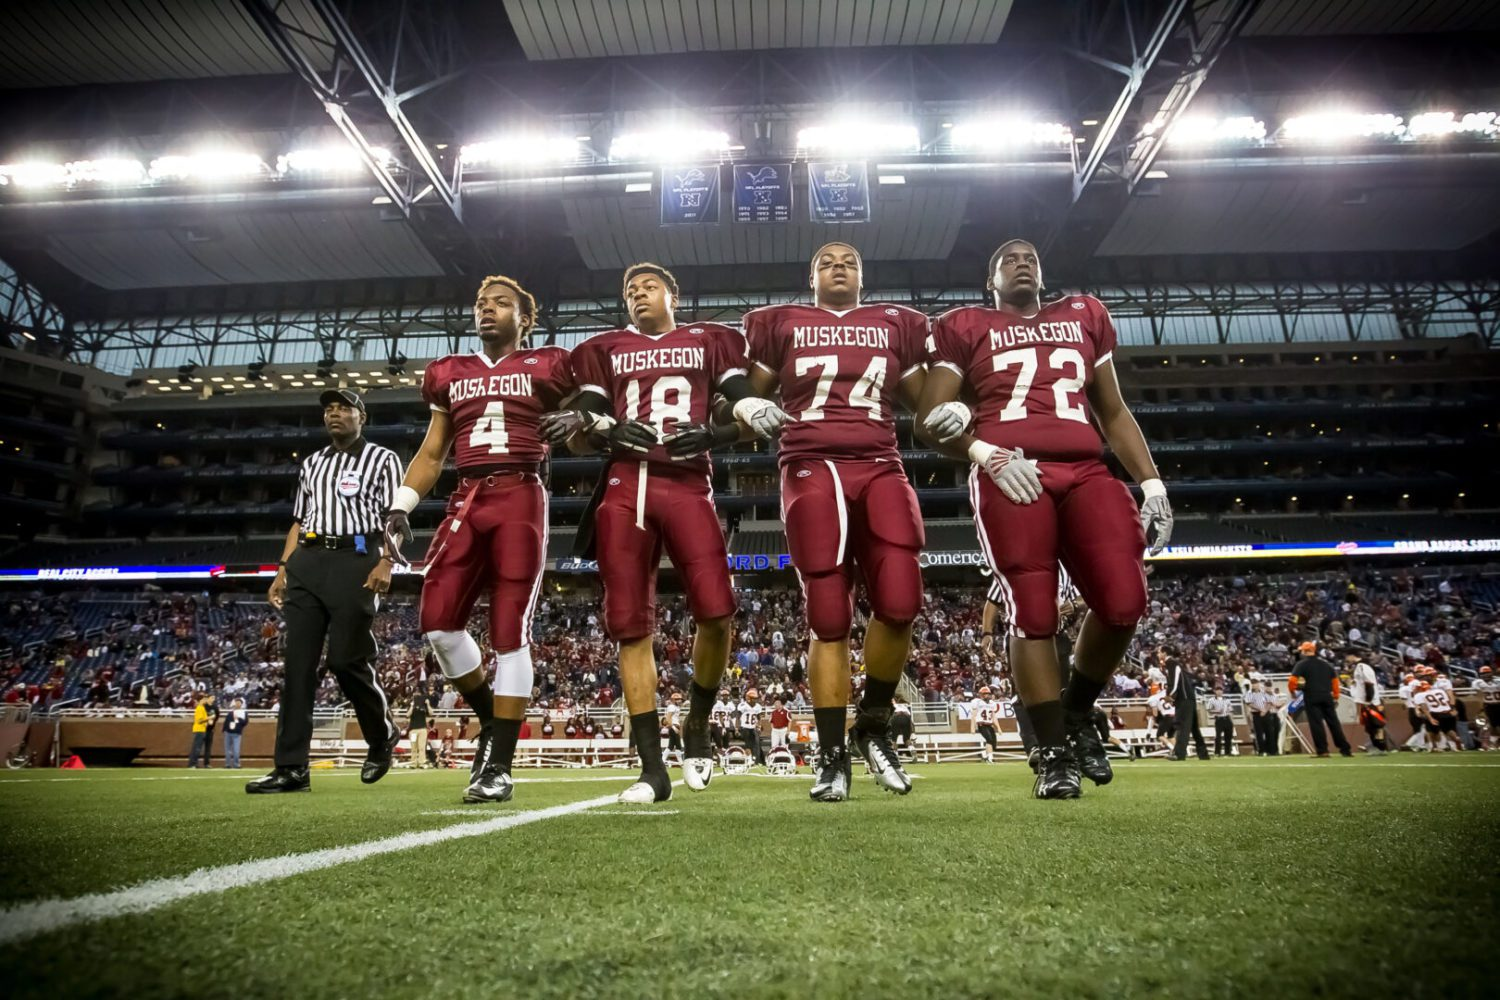 Division 2 state title game preview: Muskegon Big Reds gearing up for battle with top-ranked Birmingham Brother Rice with a Division 2 state title on the line